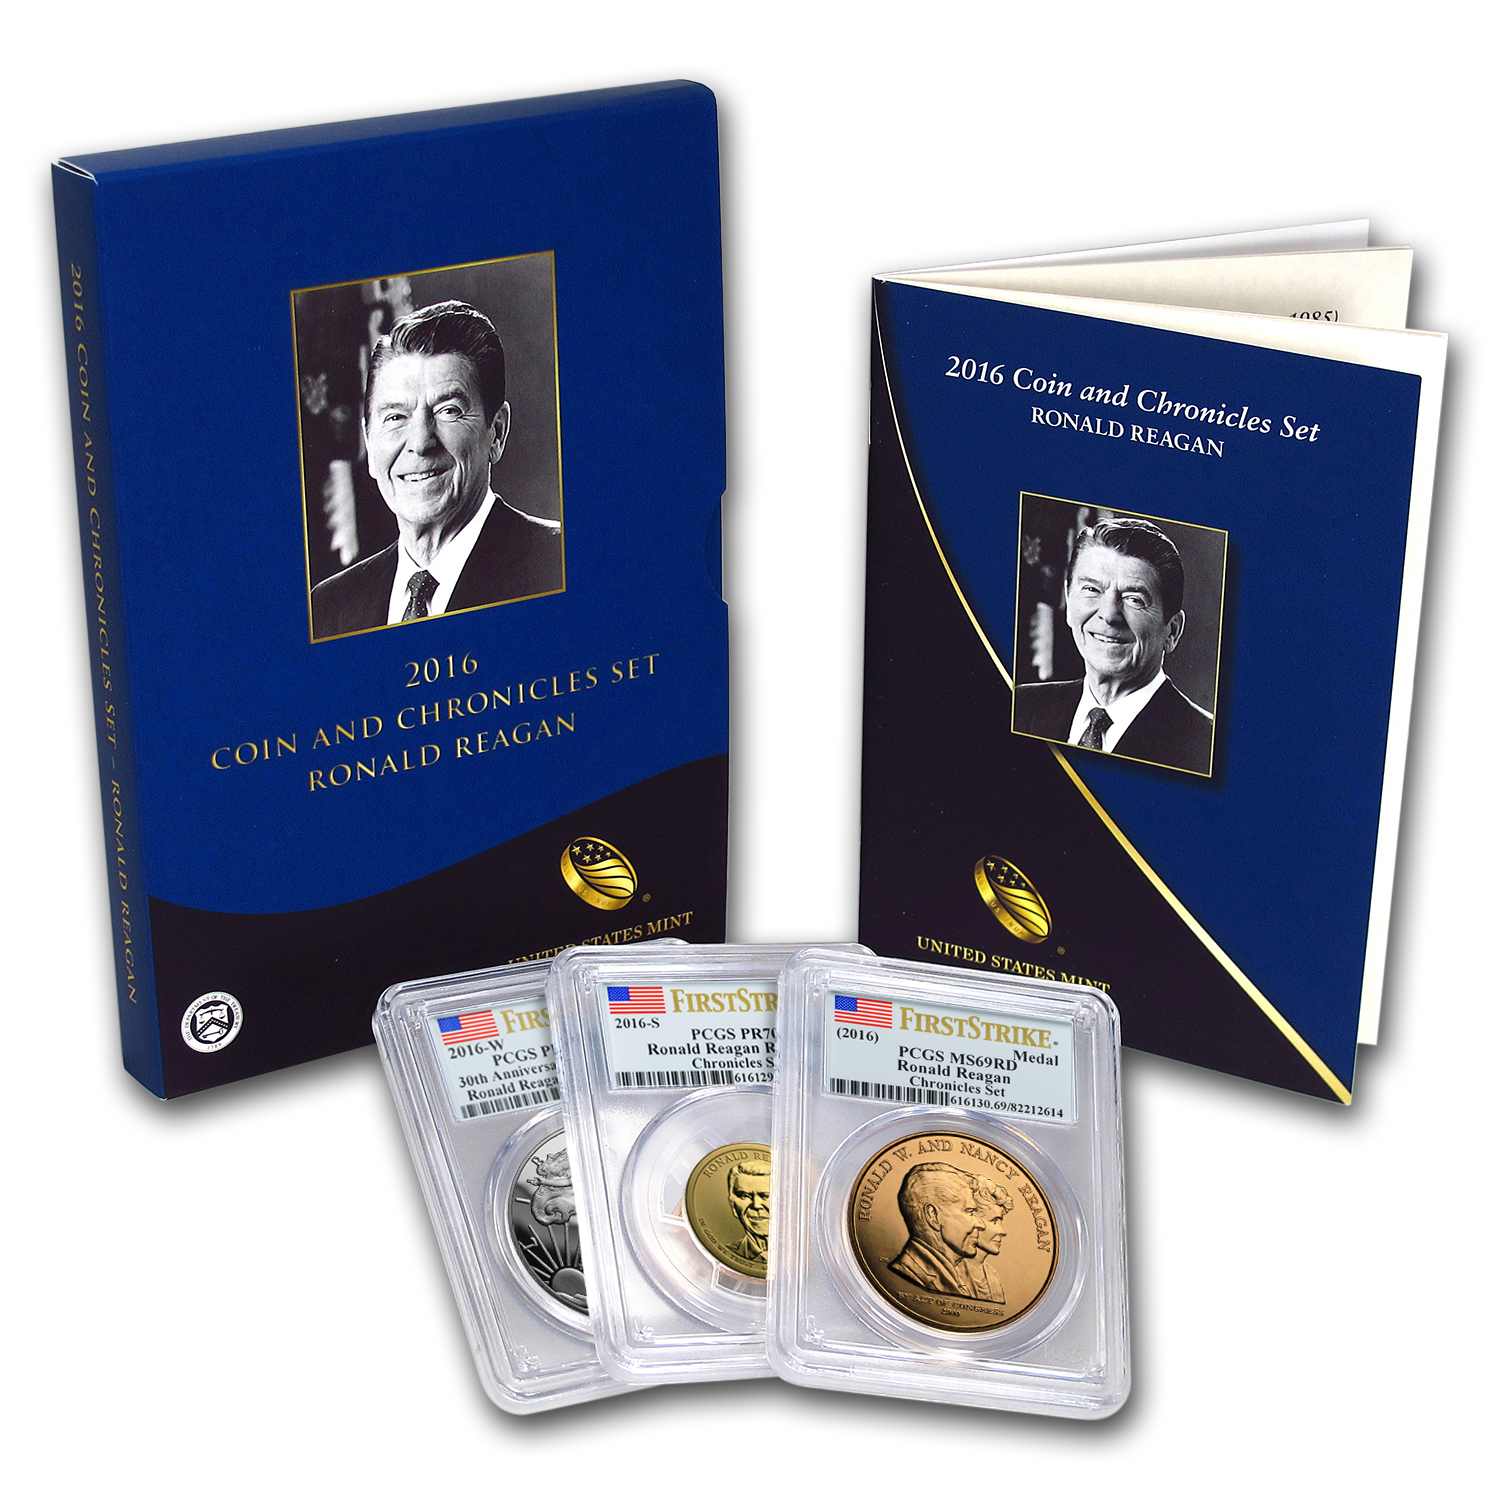 2016 Ronald Reagan Coin & Chronicles Set PR-70, PR-70, PR-69 PCGS